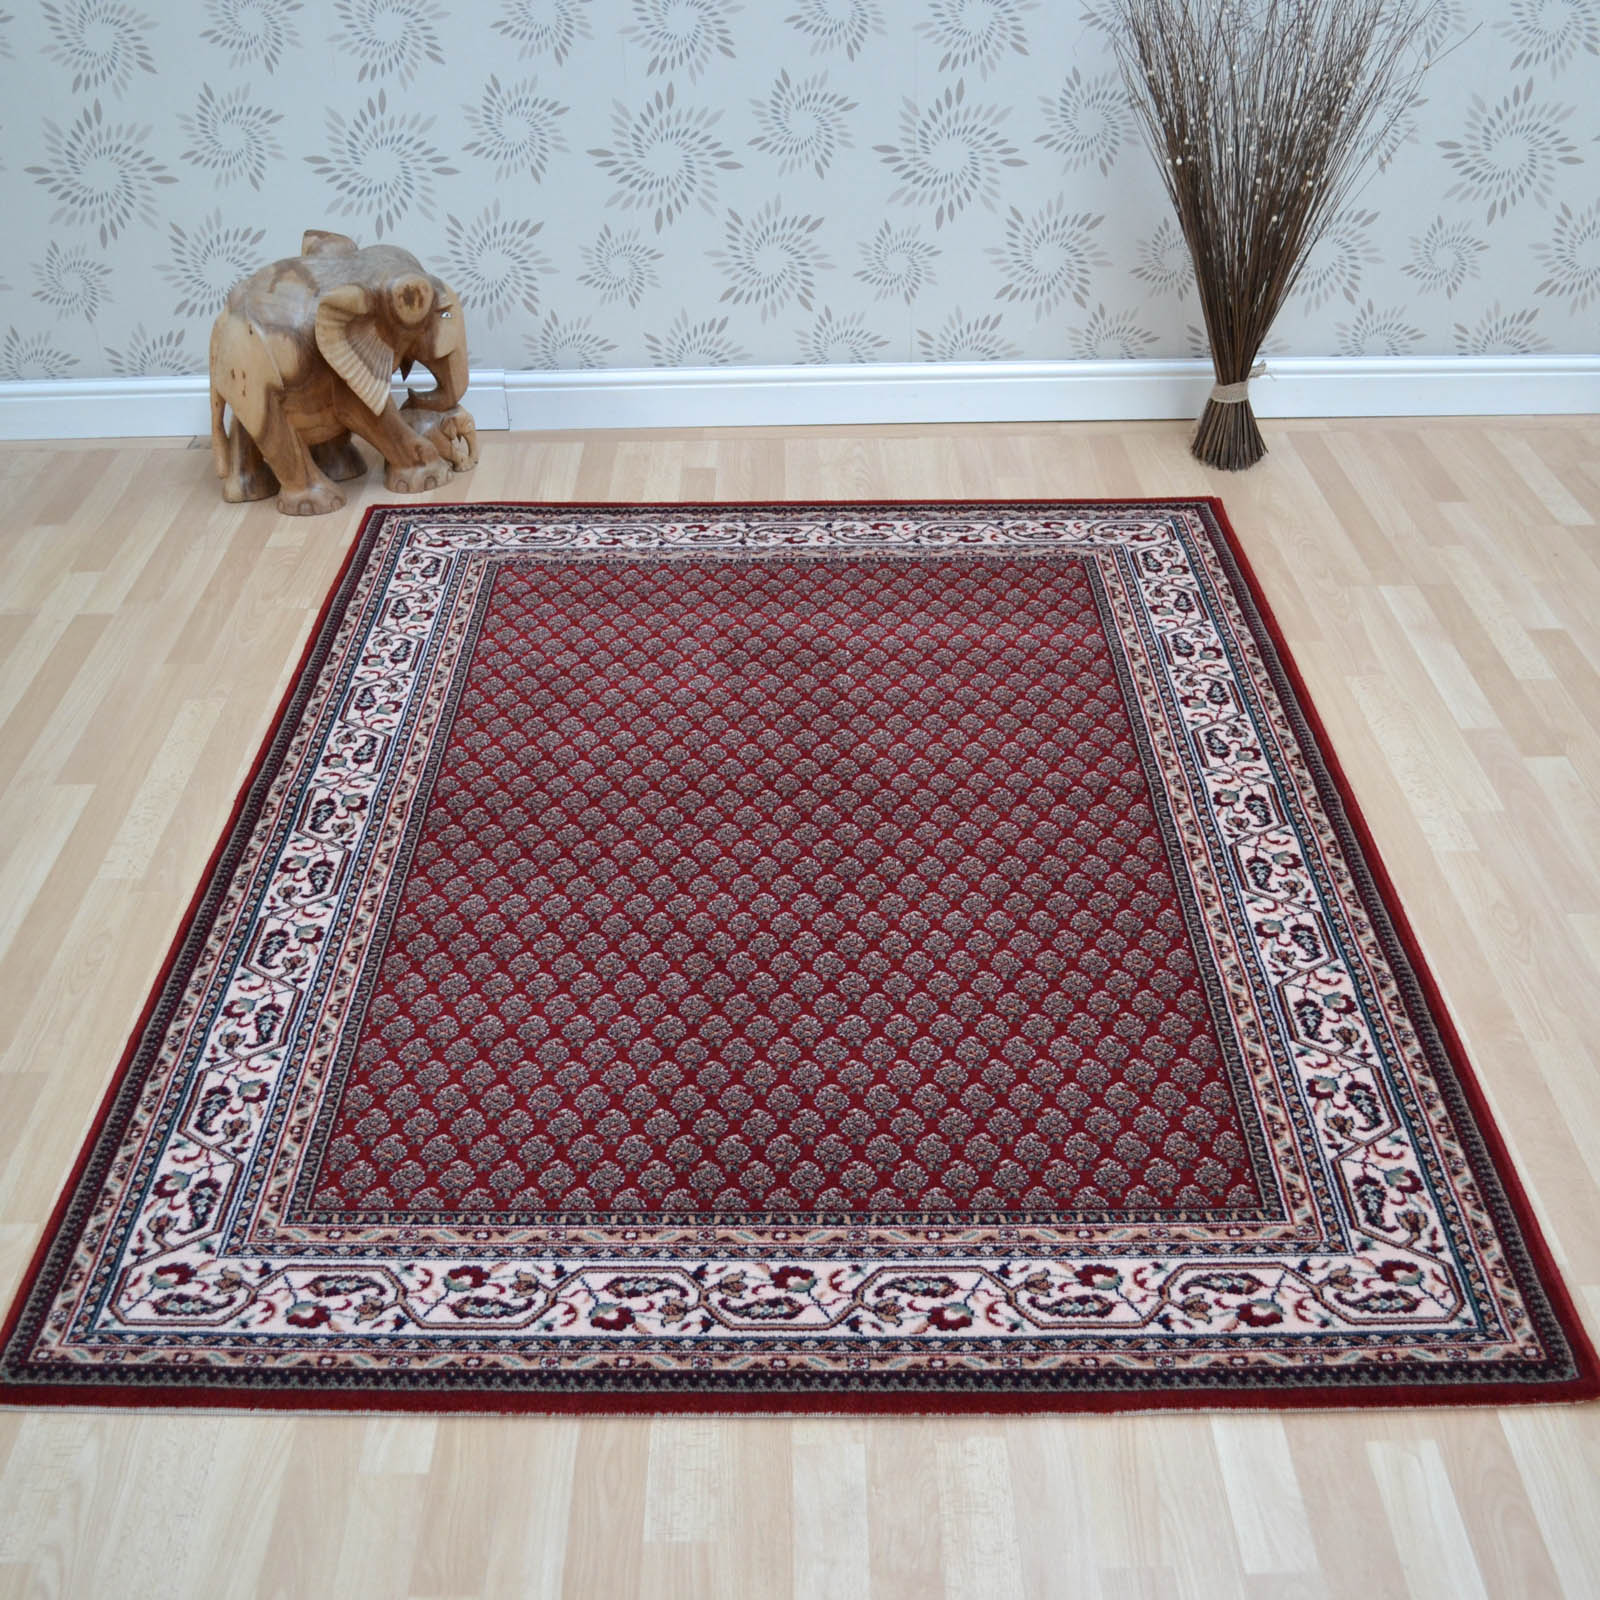 Lano Royal Rugs 1581 507 Red